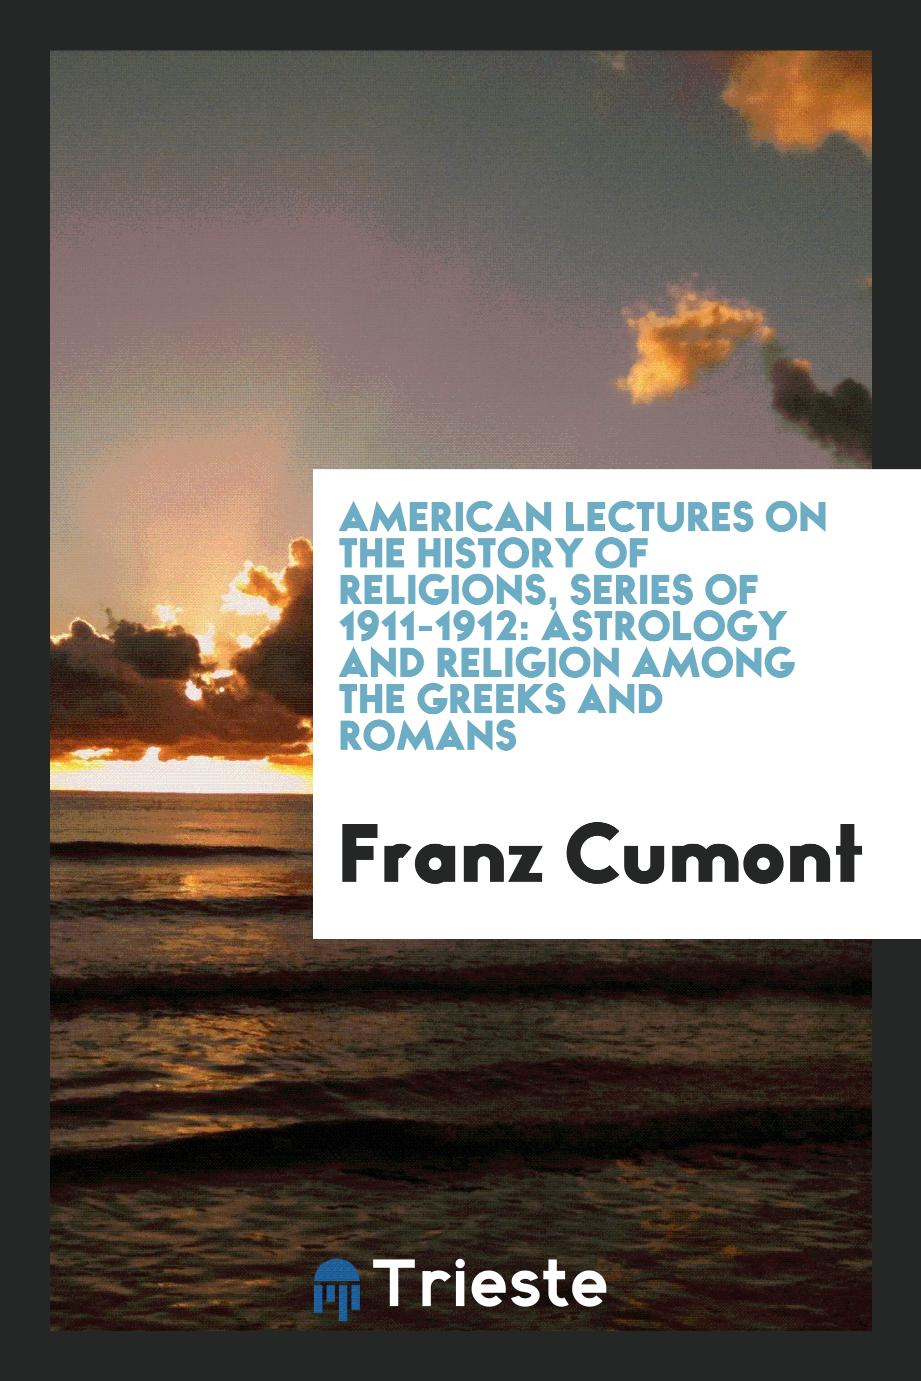 American lectures on the history of religions, series of 1911-1912: Astrology and religion among the Greeks and Romans